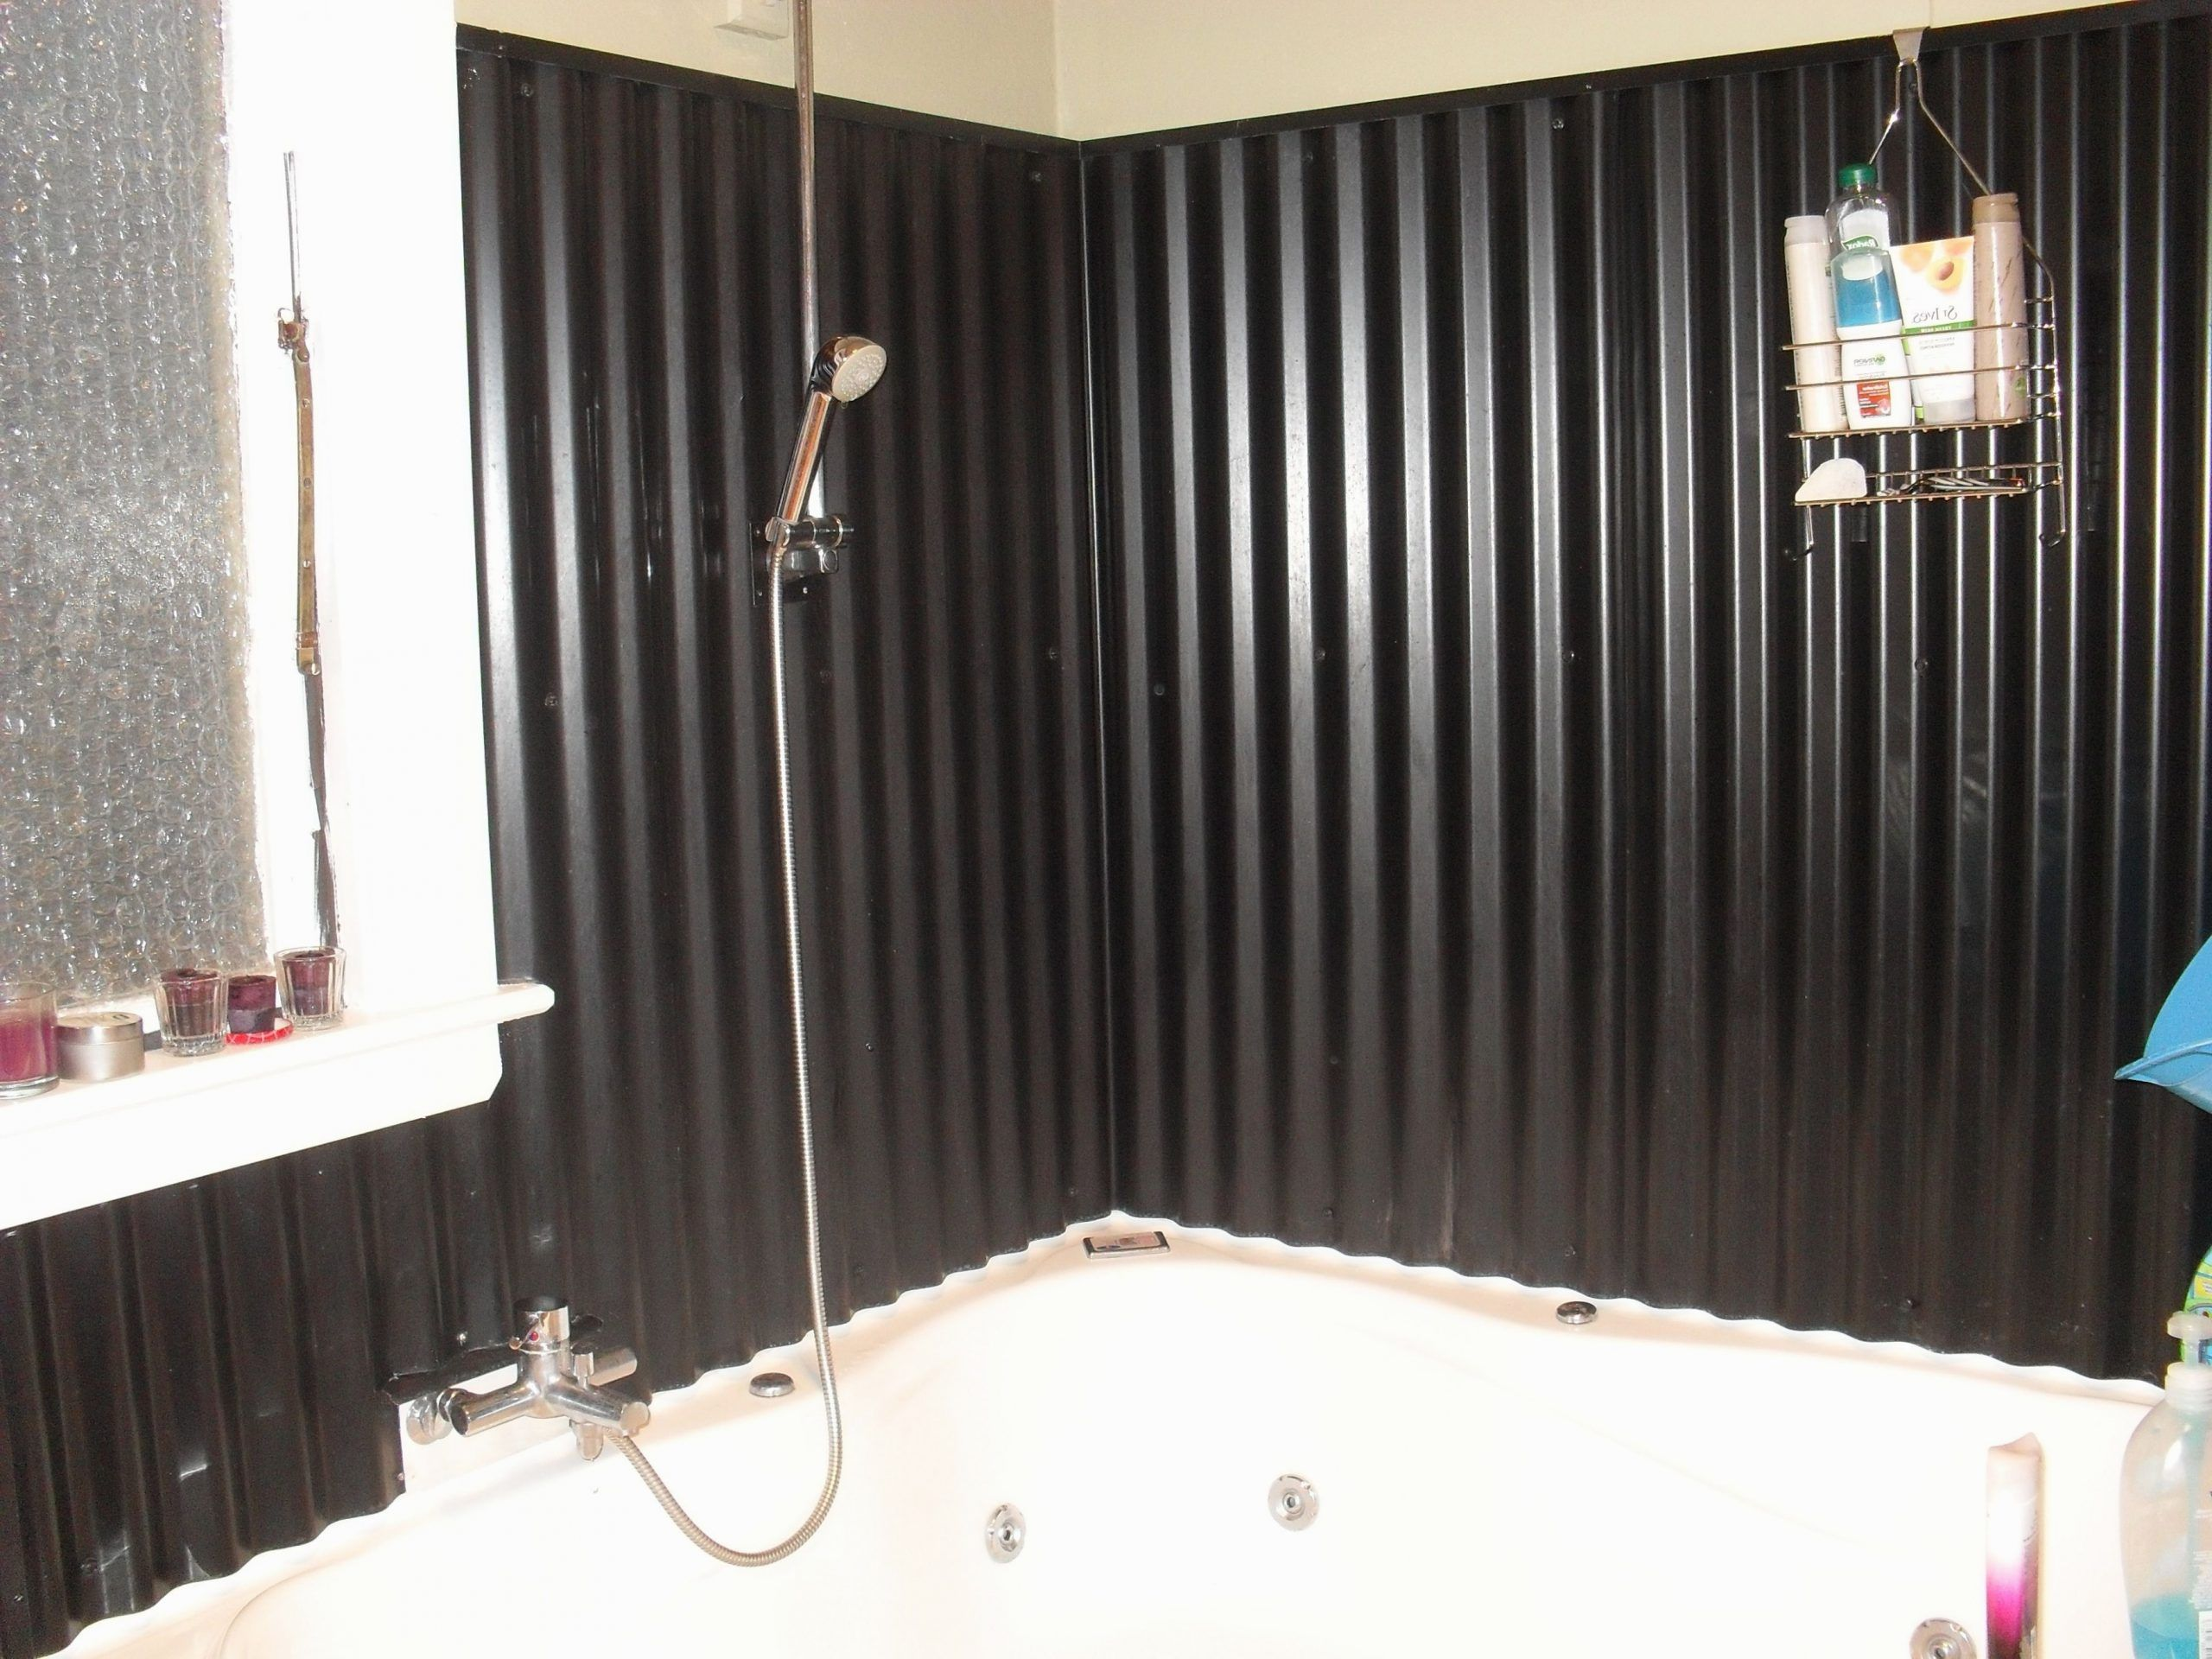 Corrugated Iron For Bathroom Wall So Easy To Clean And Looks Corrugated Metal Bathroom Walls In 2020 Tin Ceiling Bathroom Corrugated Metal Rustic Bathrooms